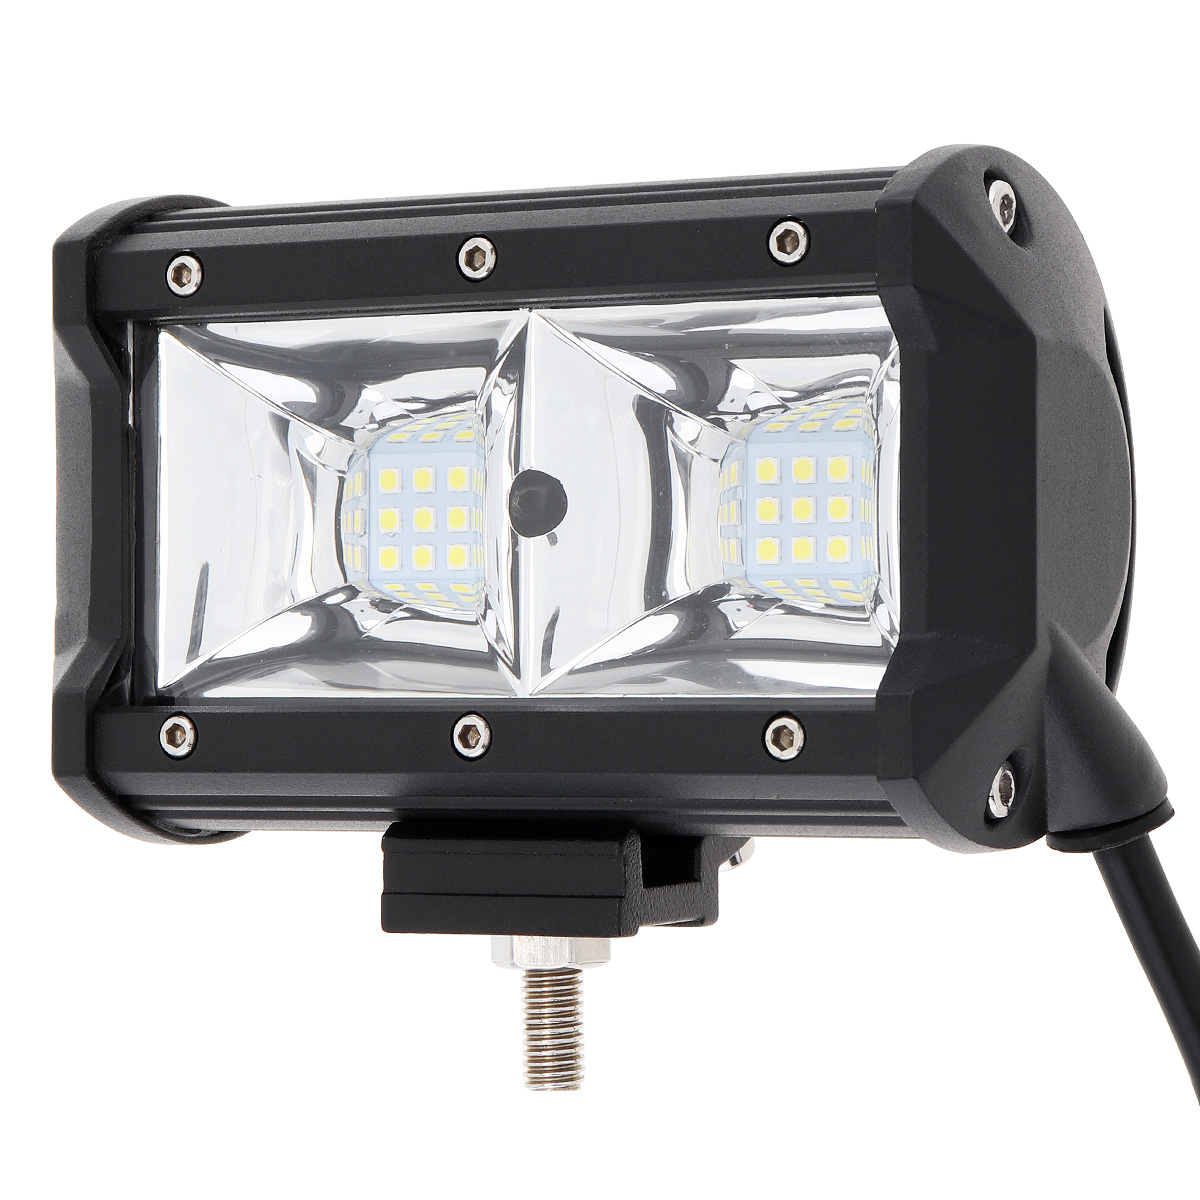 Image 5 - LED Bar 5 inch  LED Light Bar 3 Rows Work Light Combo Beam for Driving Offroad Boat Car Tractor Truck 4x4 SUV 12V 24V-in Car Headlight Bulbs(LED) from Automobiles & Motorcycles